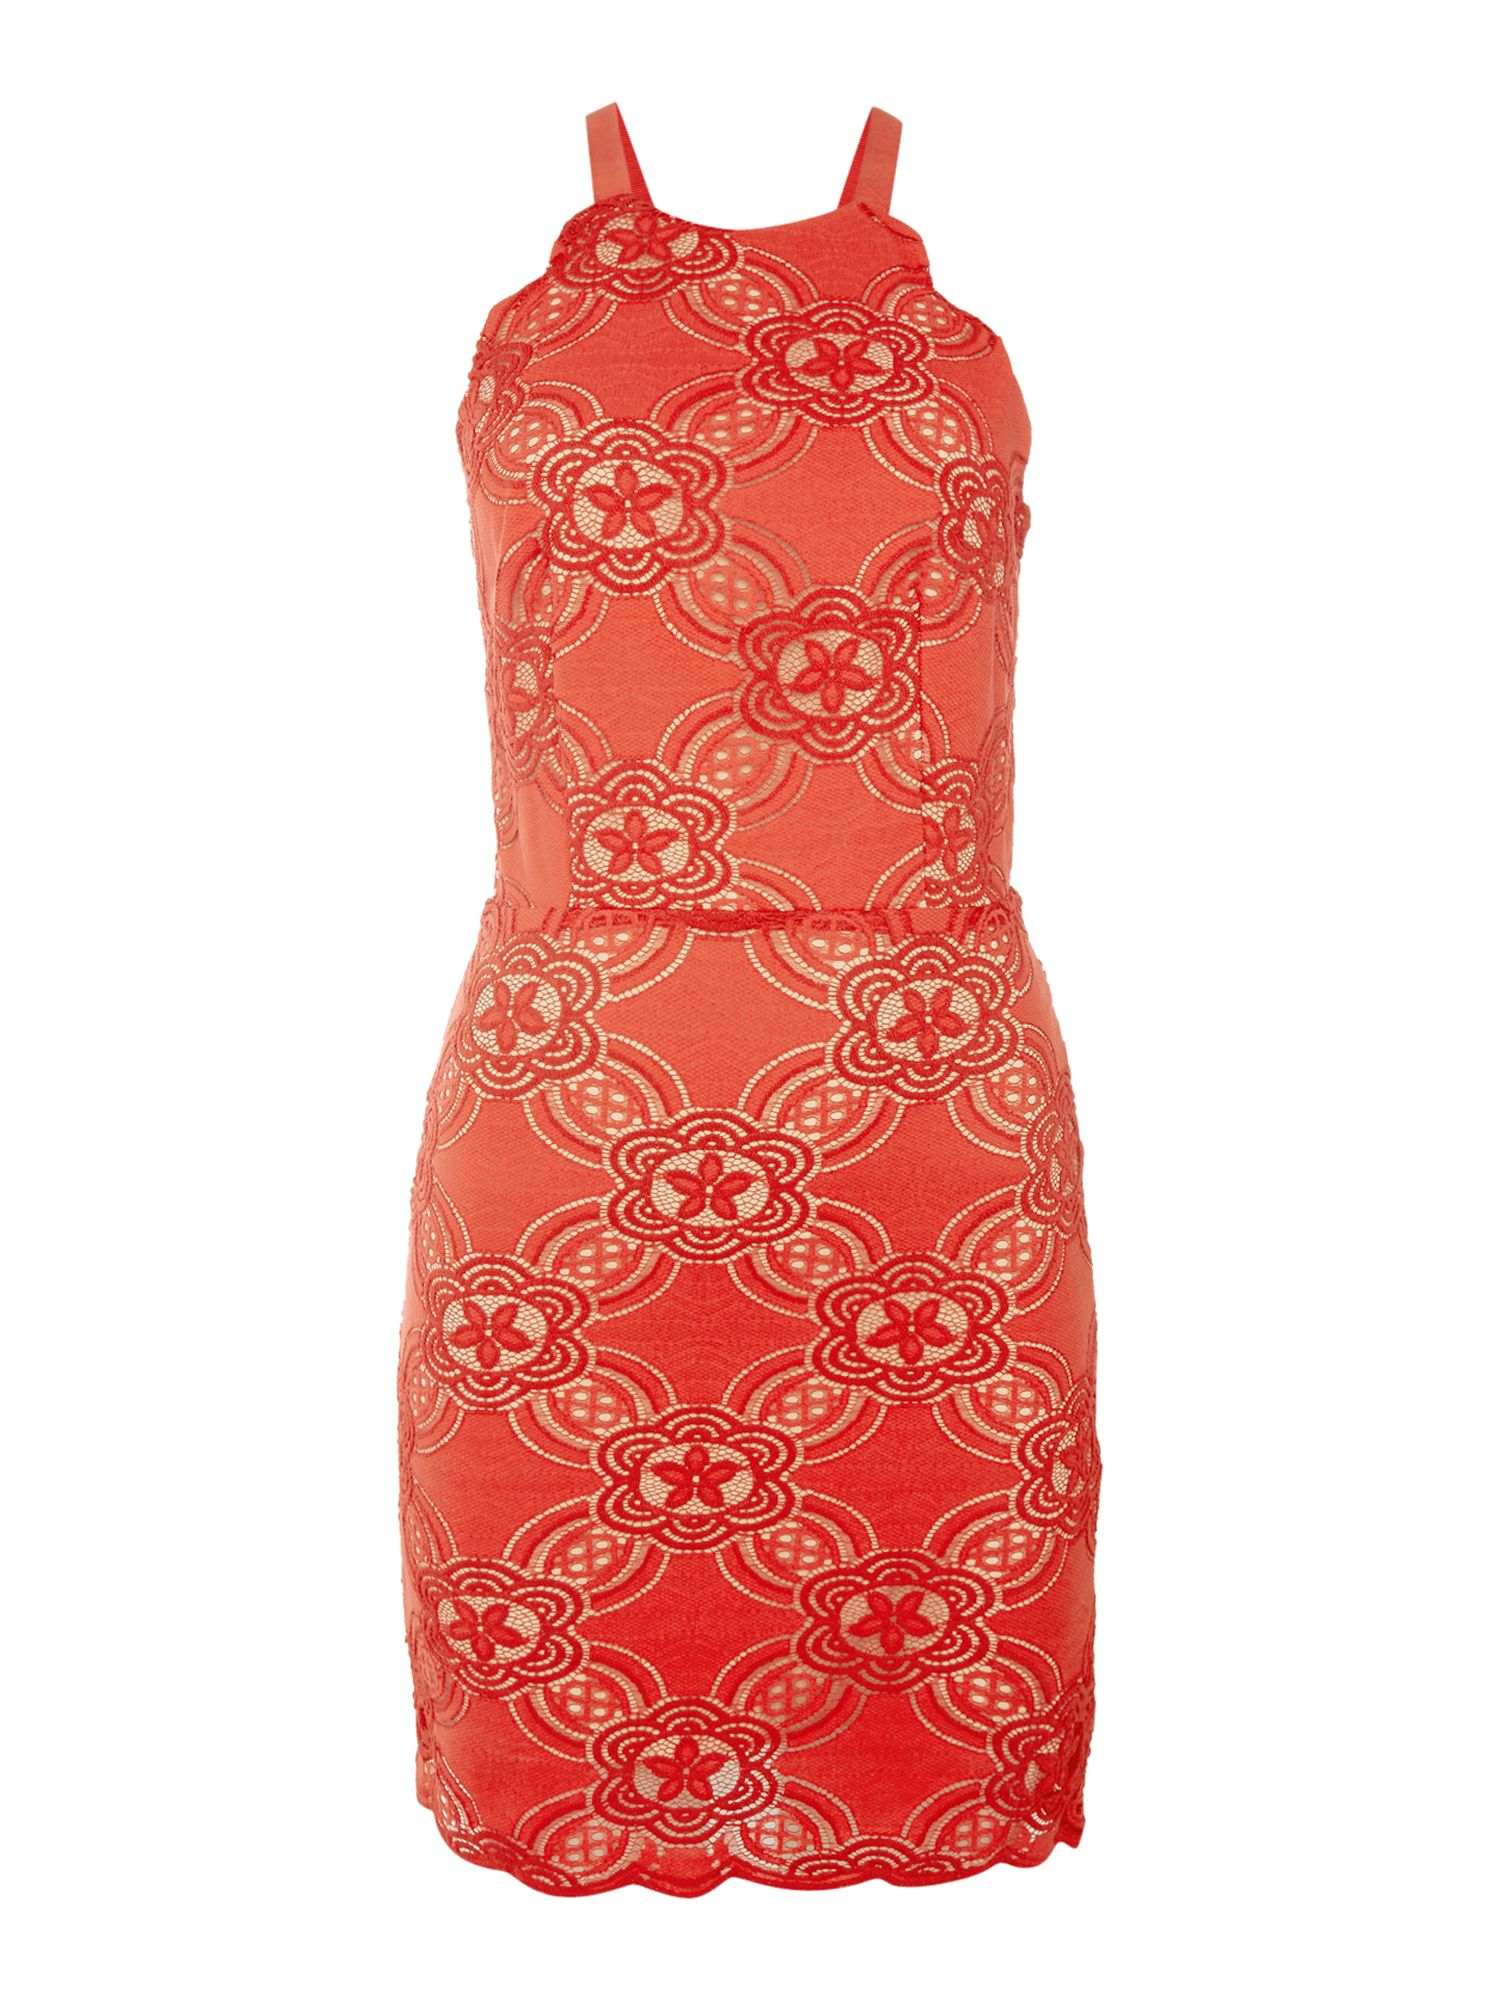 Endless Rose Sleeveless Thin Strappy Bodycon Dress, Red